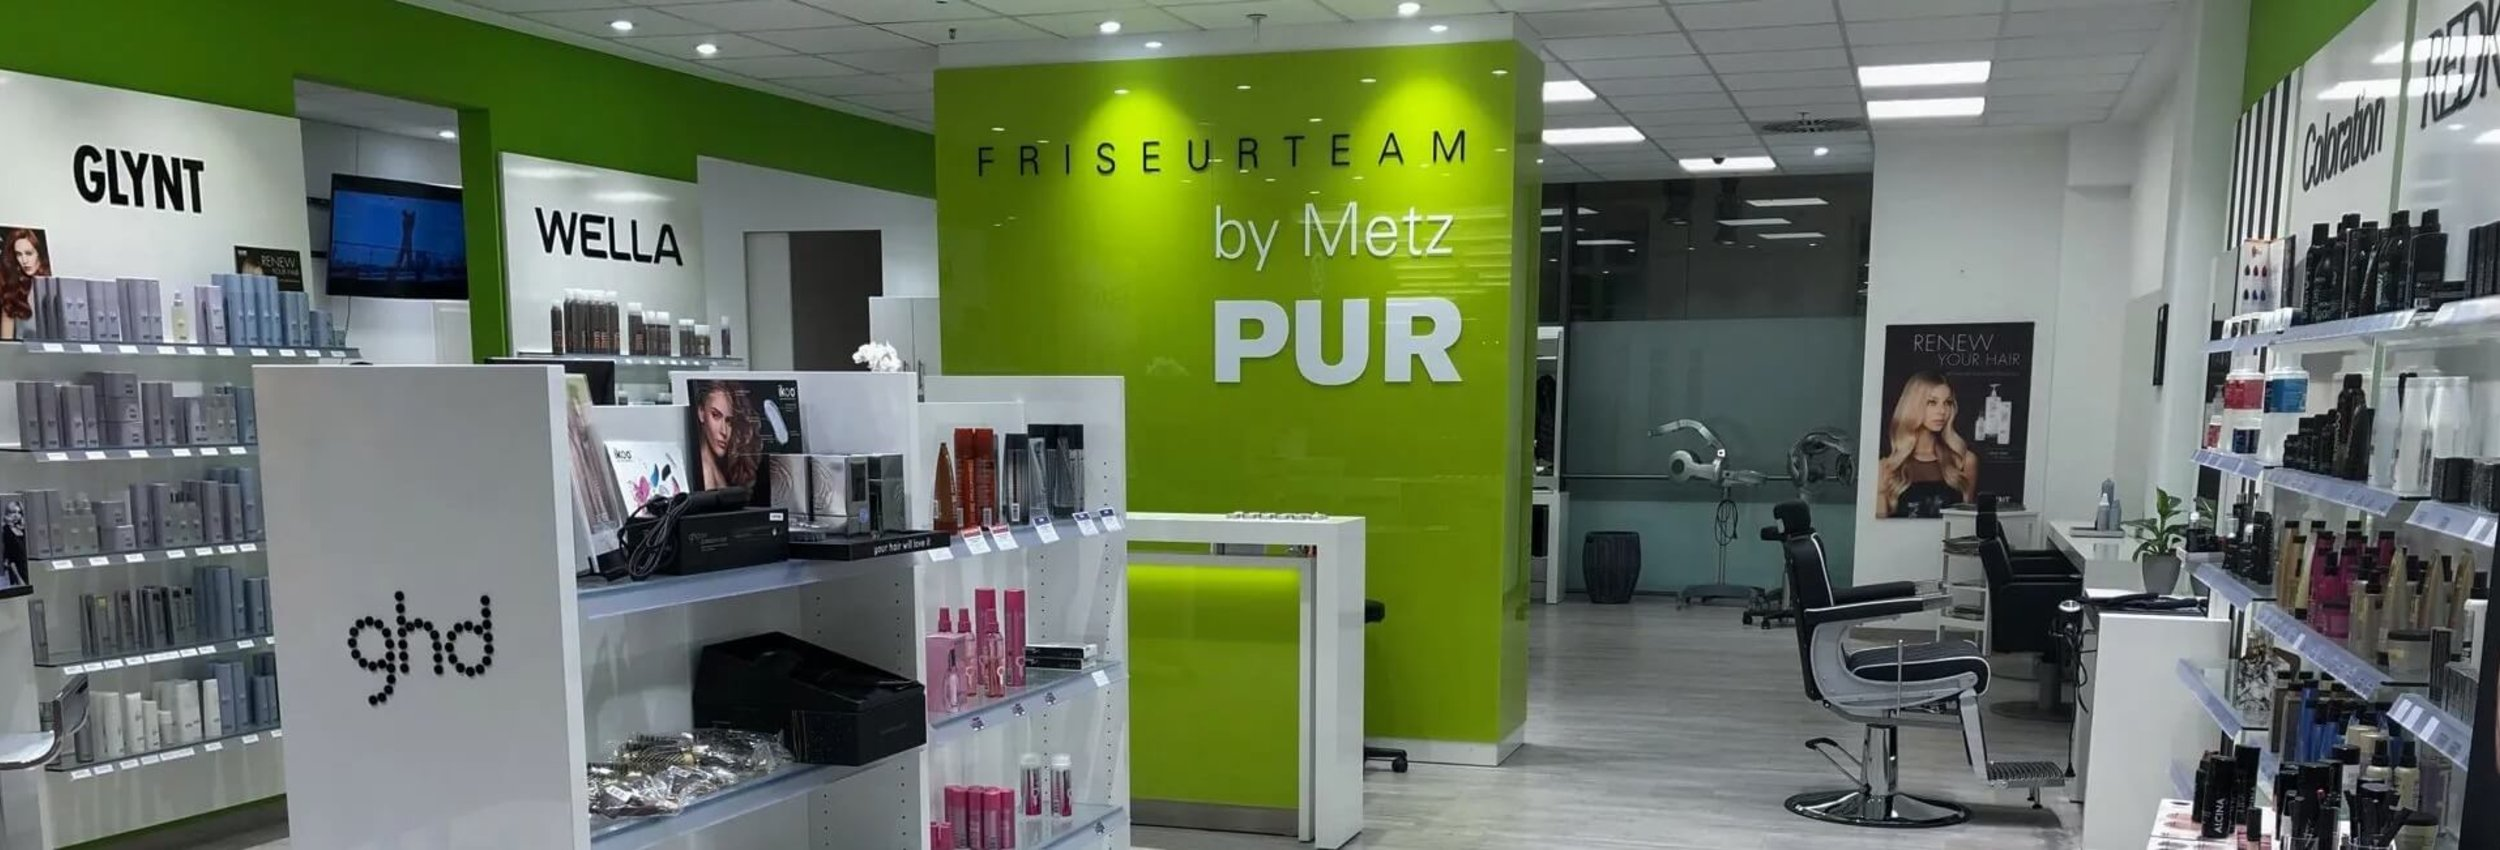 FRISEURTEAM PUR by Metz